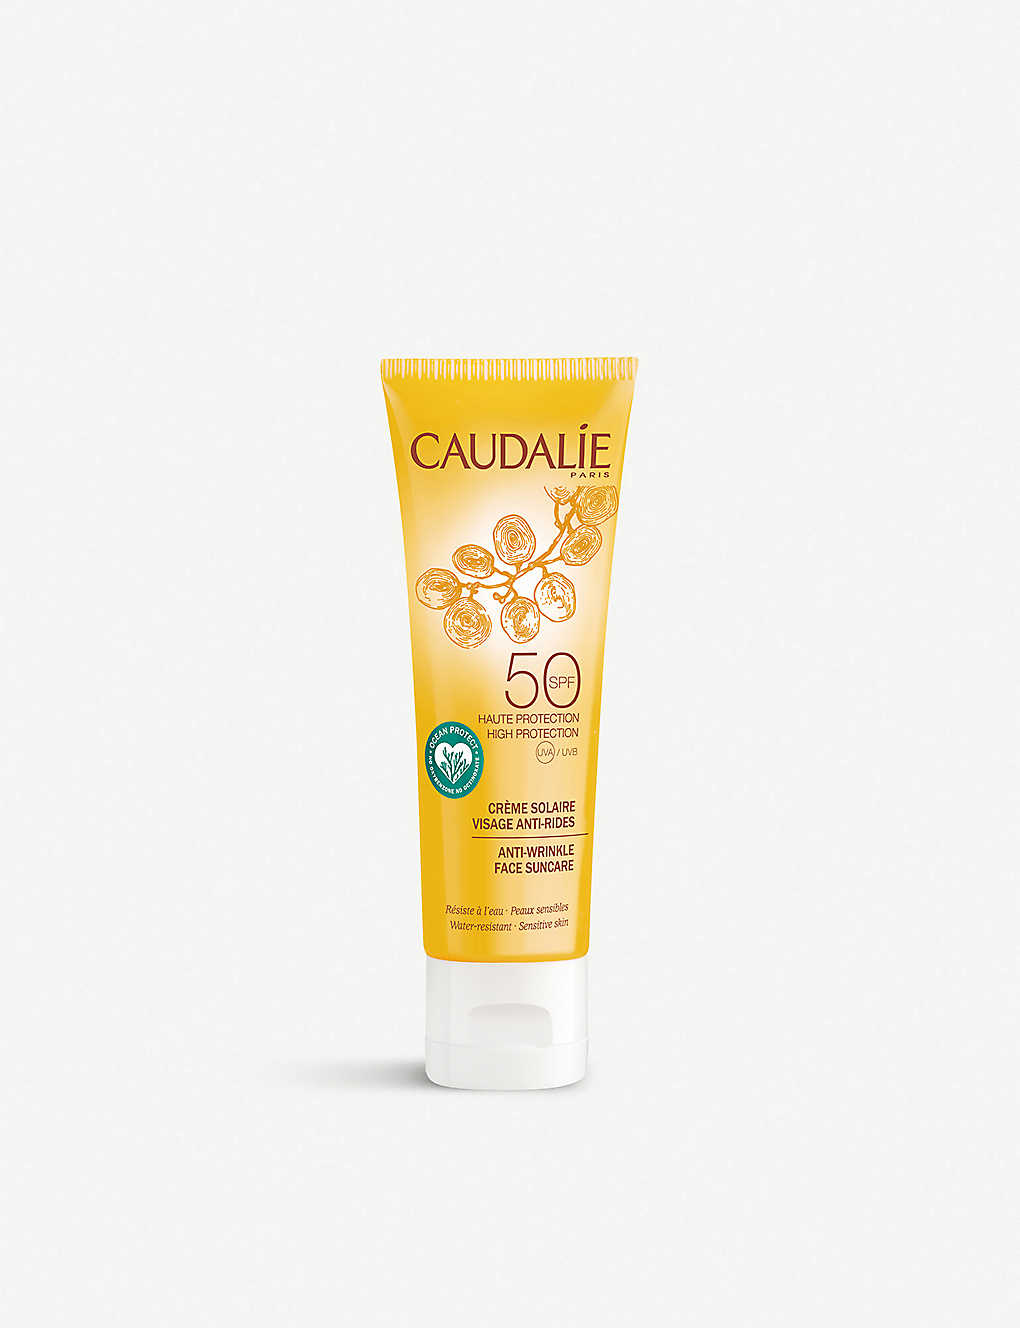 CAUDALIE: Anti-Wrinkle Face Suncare SPF50 50ml